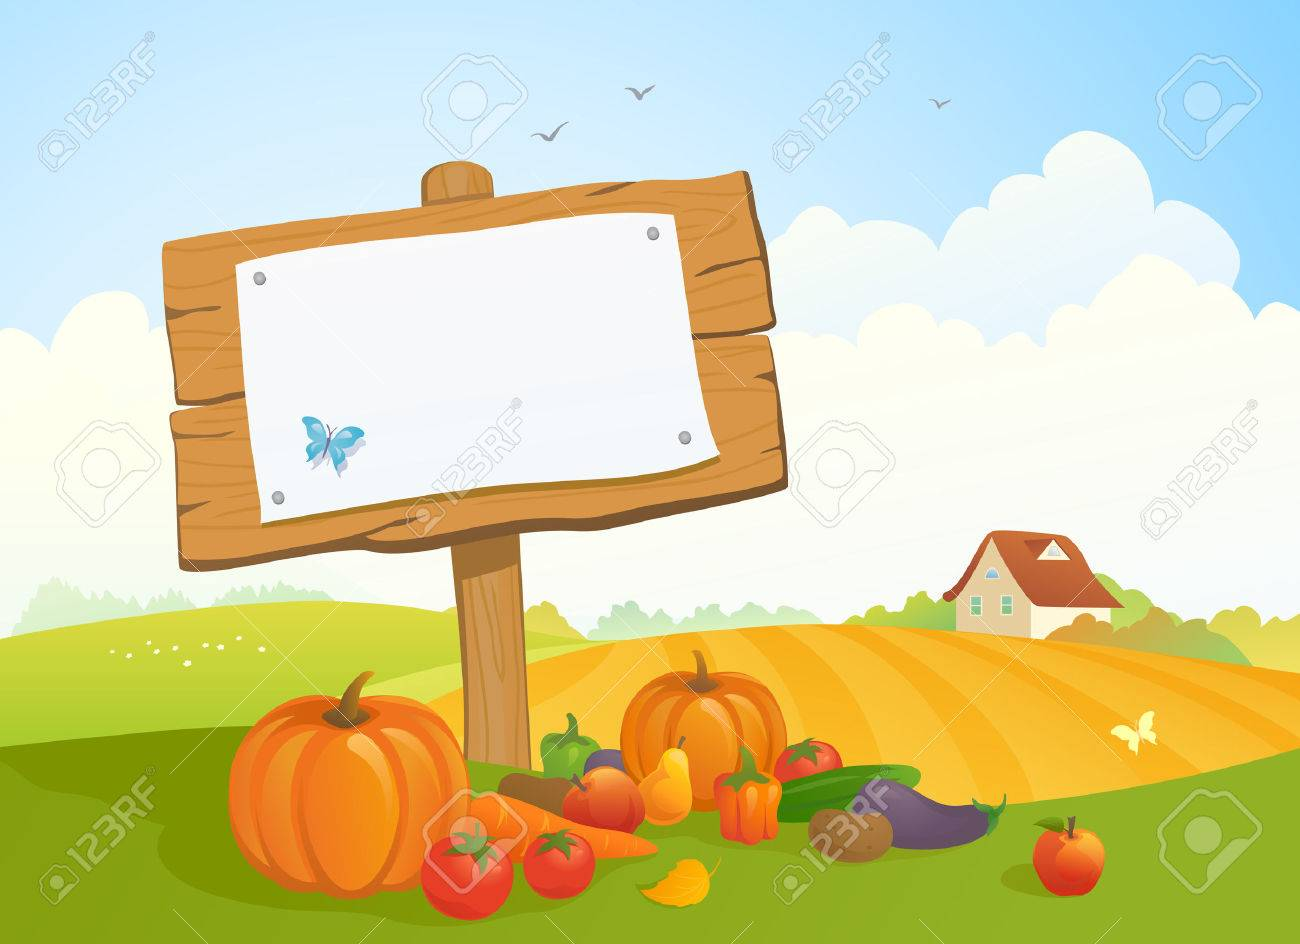 illustration of a fall harvest and Thanksgiving landscape with a wooden signboard - 43941050